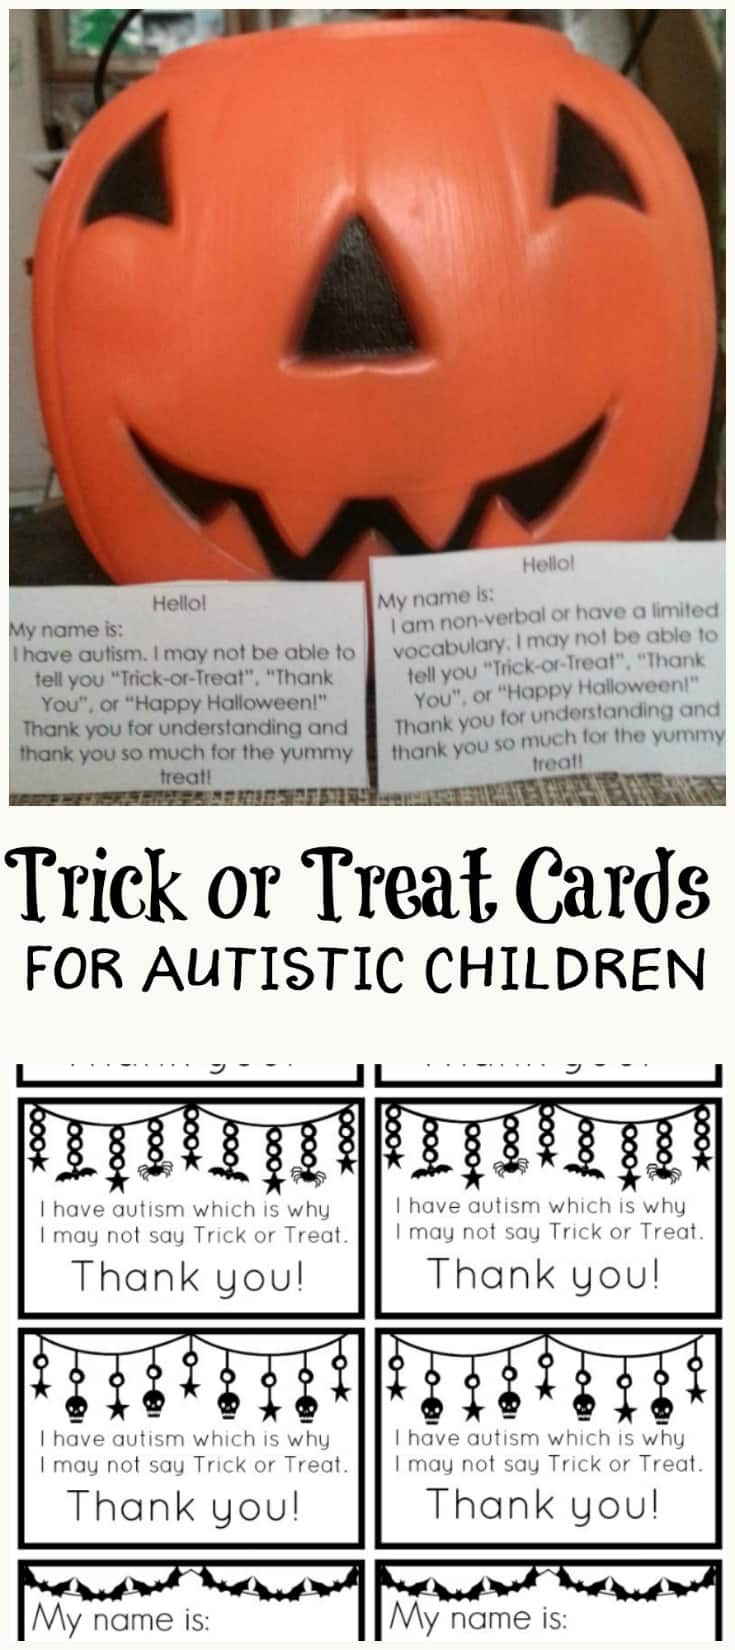 Halloween can be downright difficult for autistic kids. Help them out a little bit with these trick or treat cards.